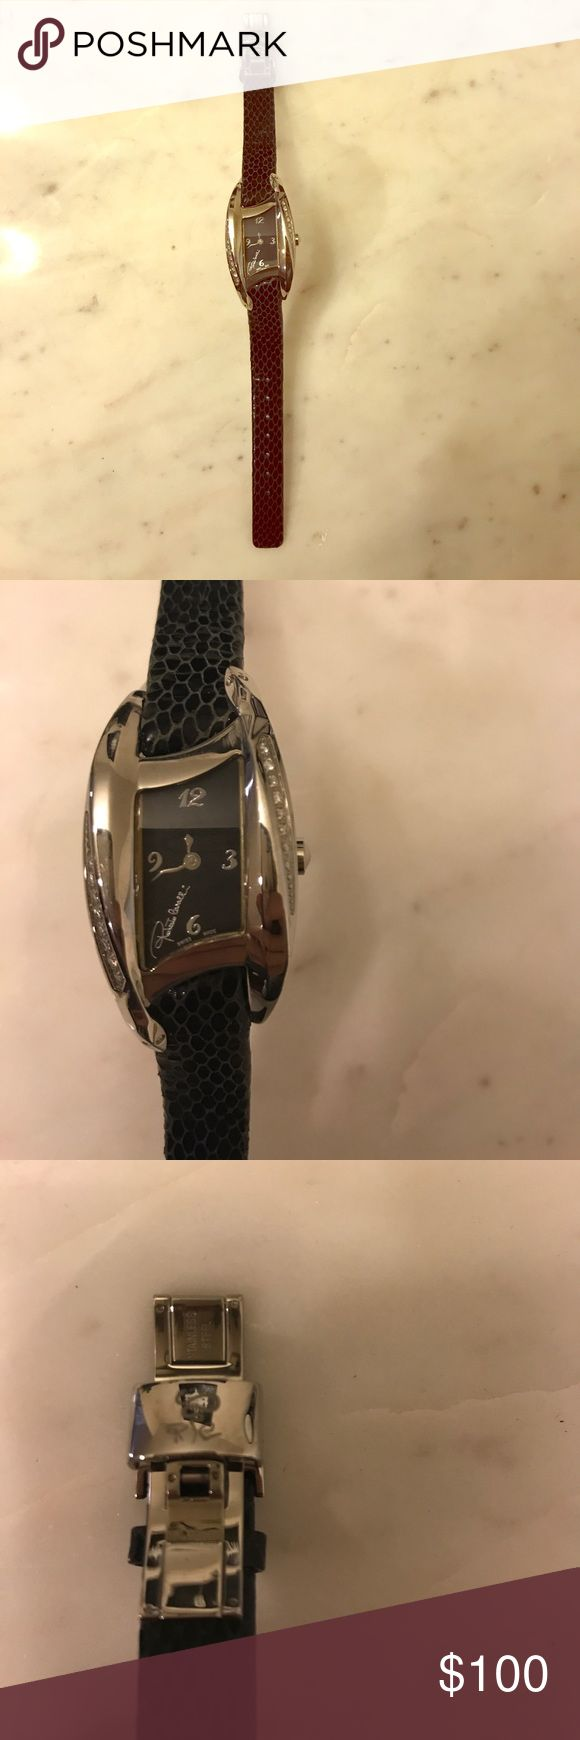 NWT ROBERTO CAVALLI SNAKESKIN CRYSTAL WATCH. Roberto Cavalli snakeskin crystal watch. Beautiful black band with crystals on both sides of the face. Needs a battery. Really luxurious piece. Roberto Cavalli Accessories Watches